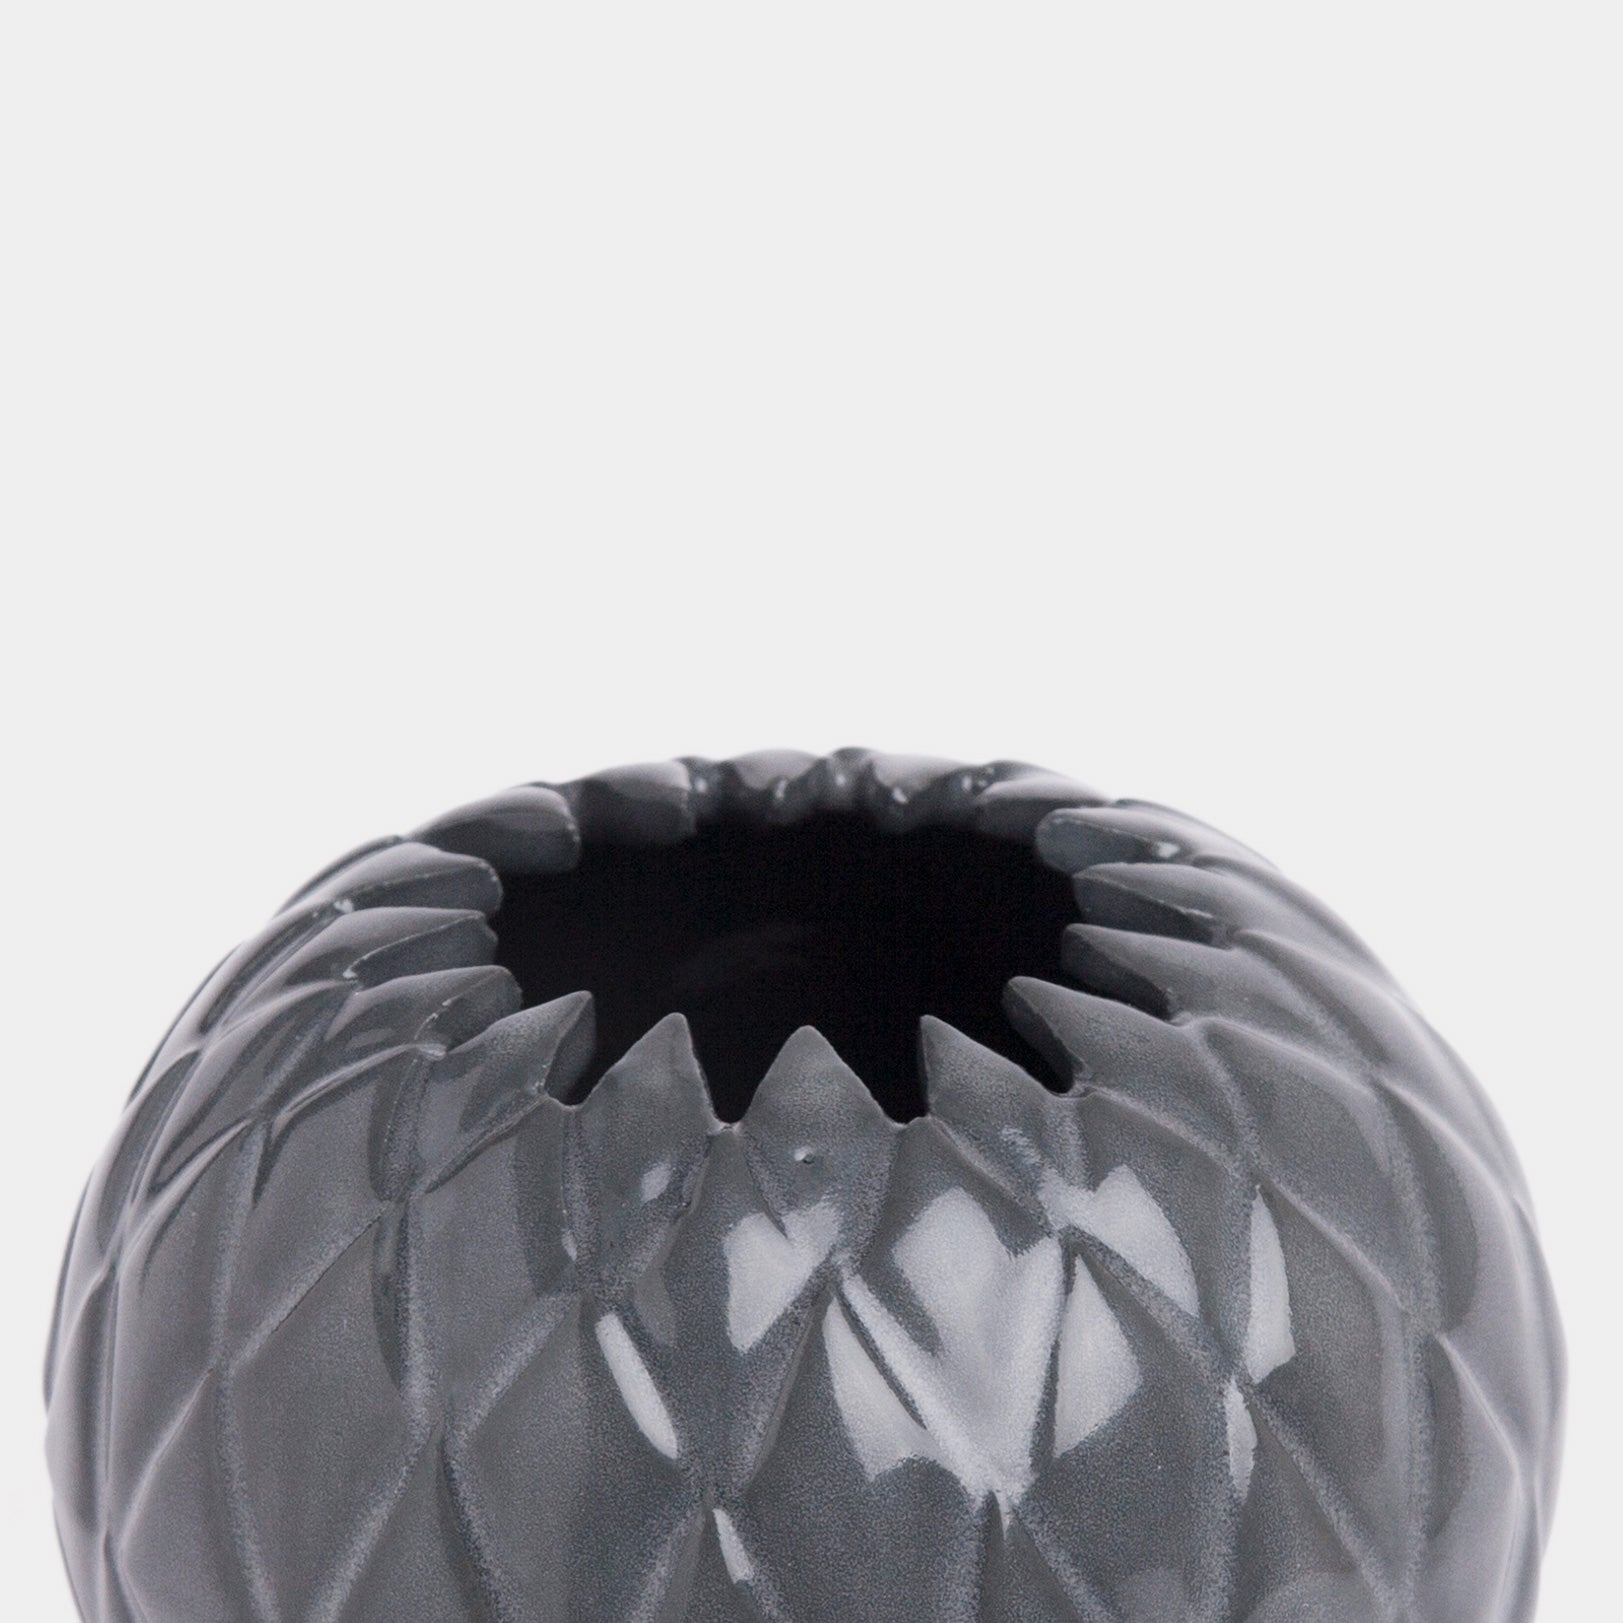 Handmade Thistle bowl in gloss black by Caro Gates